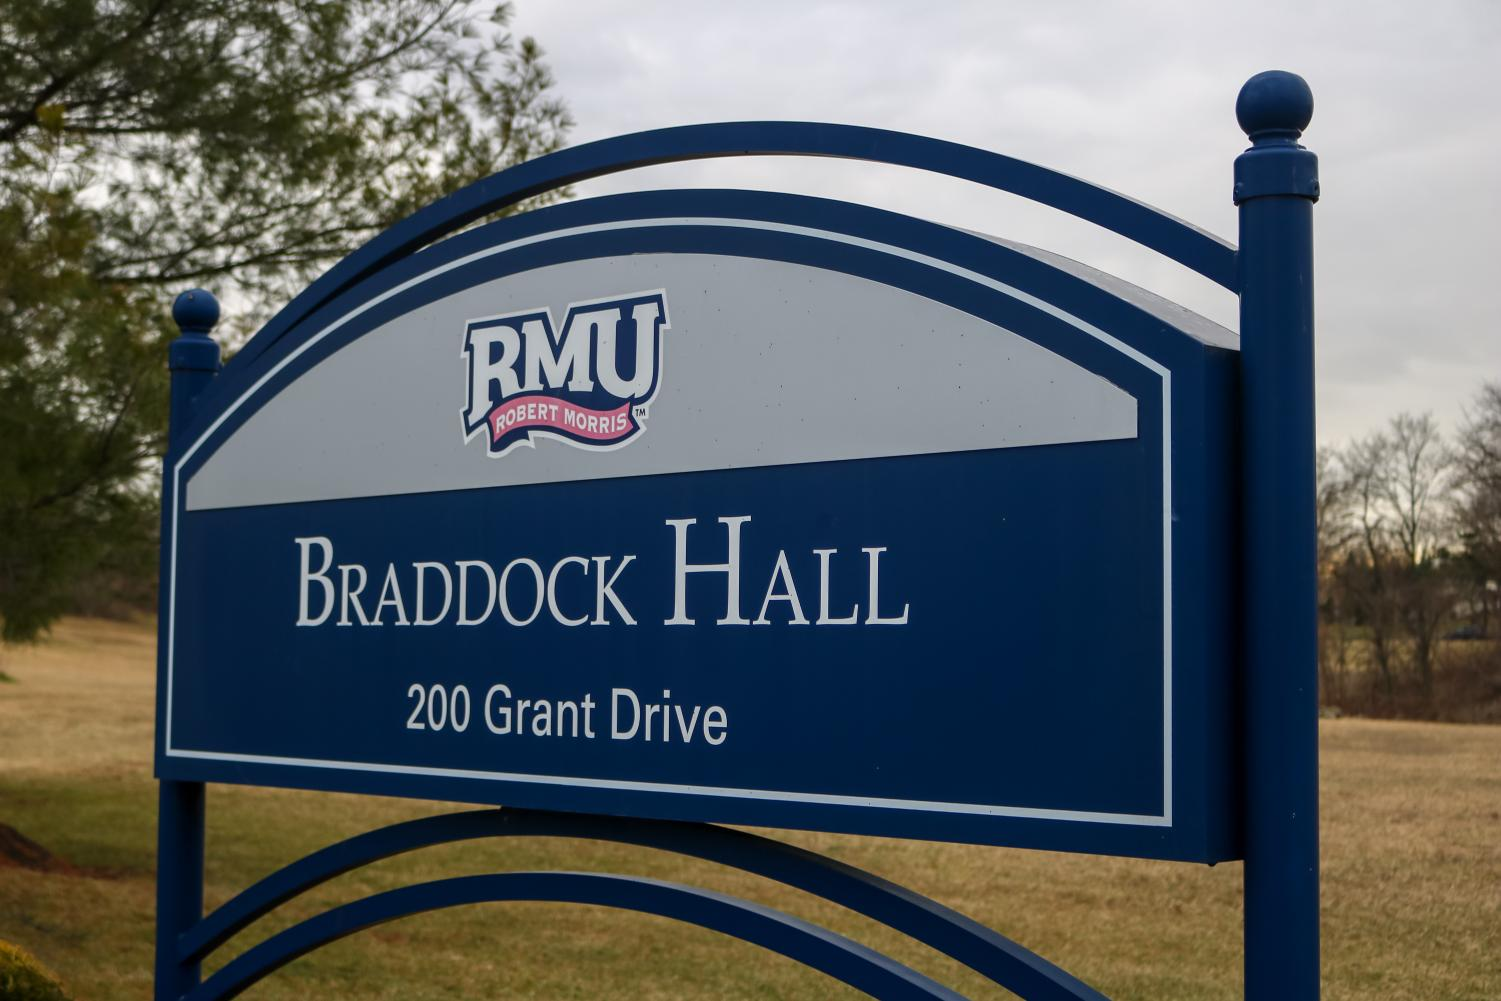 Braddock Hall is one of Robert Morris University's many student housing dormitories. Photo Credit: (RMU Sentry Media/Megan Shandel)